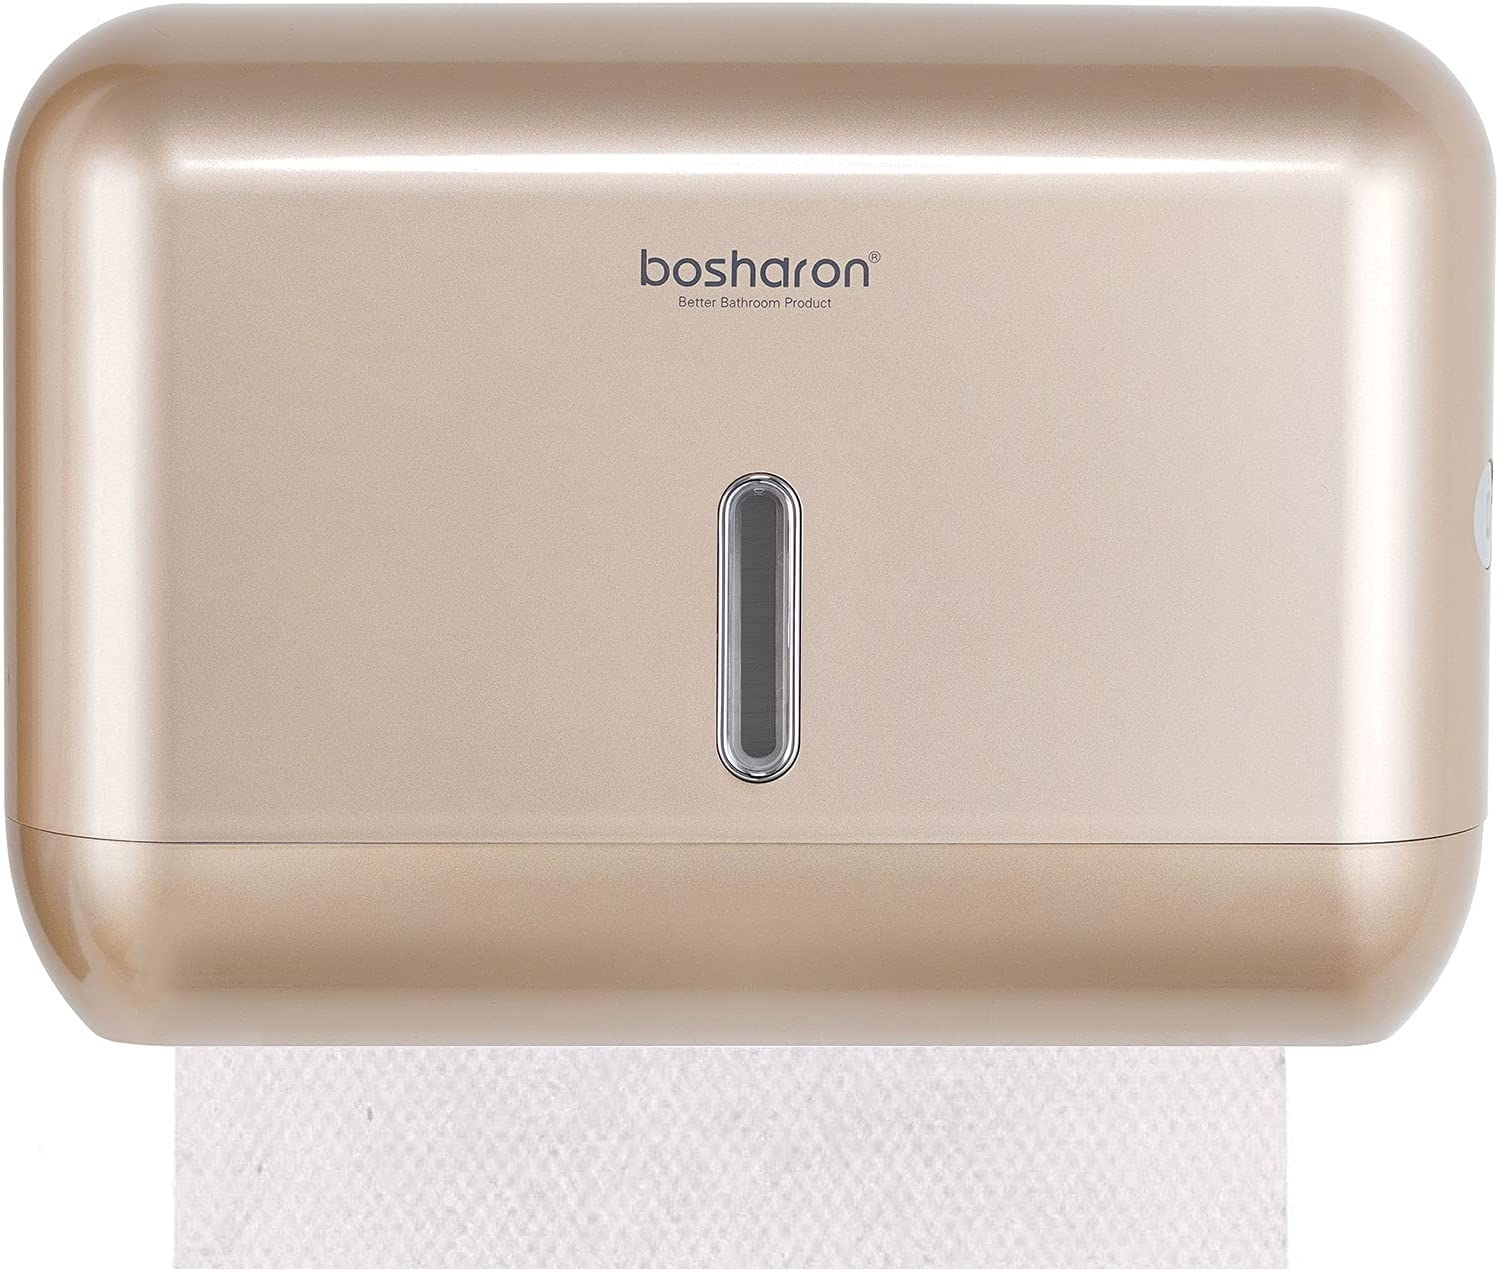 Paper Towel Dispenser Wall Mounted, Paper Towel Dispenser for Home Bathroom or Commercial, Hand Towel and Tissue Dispenser (Gold)